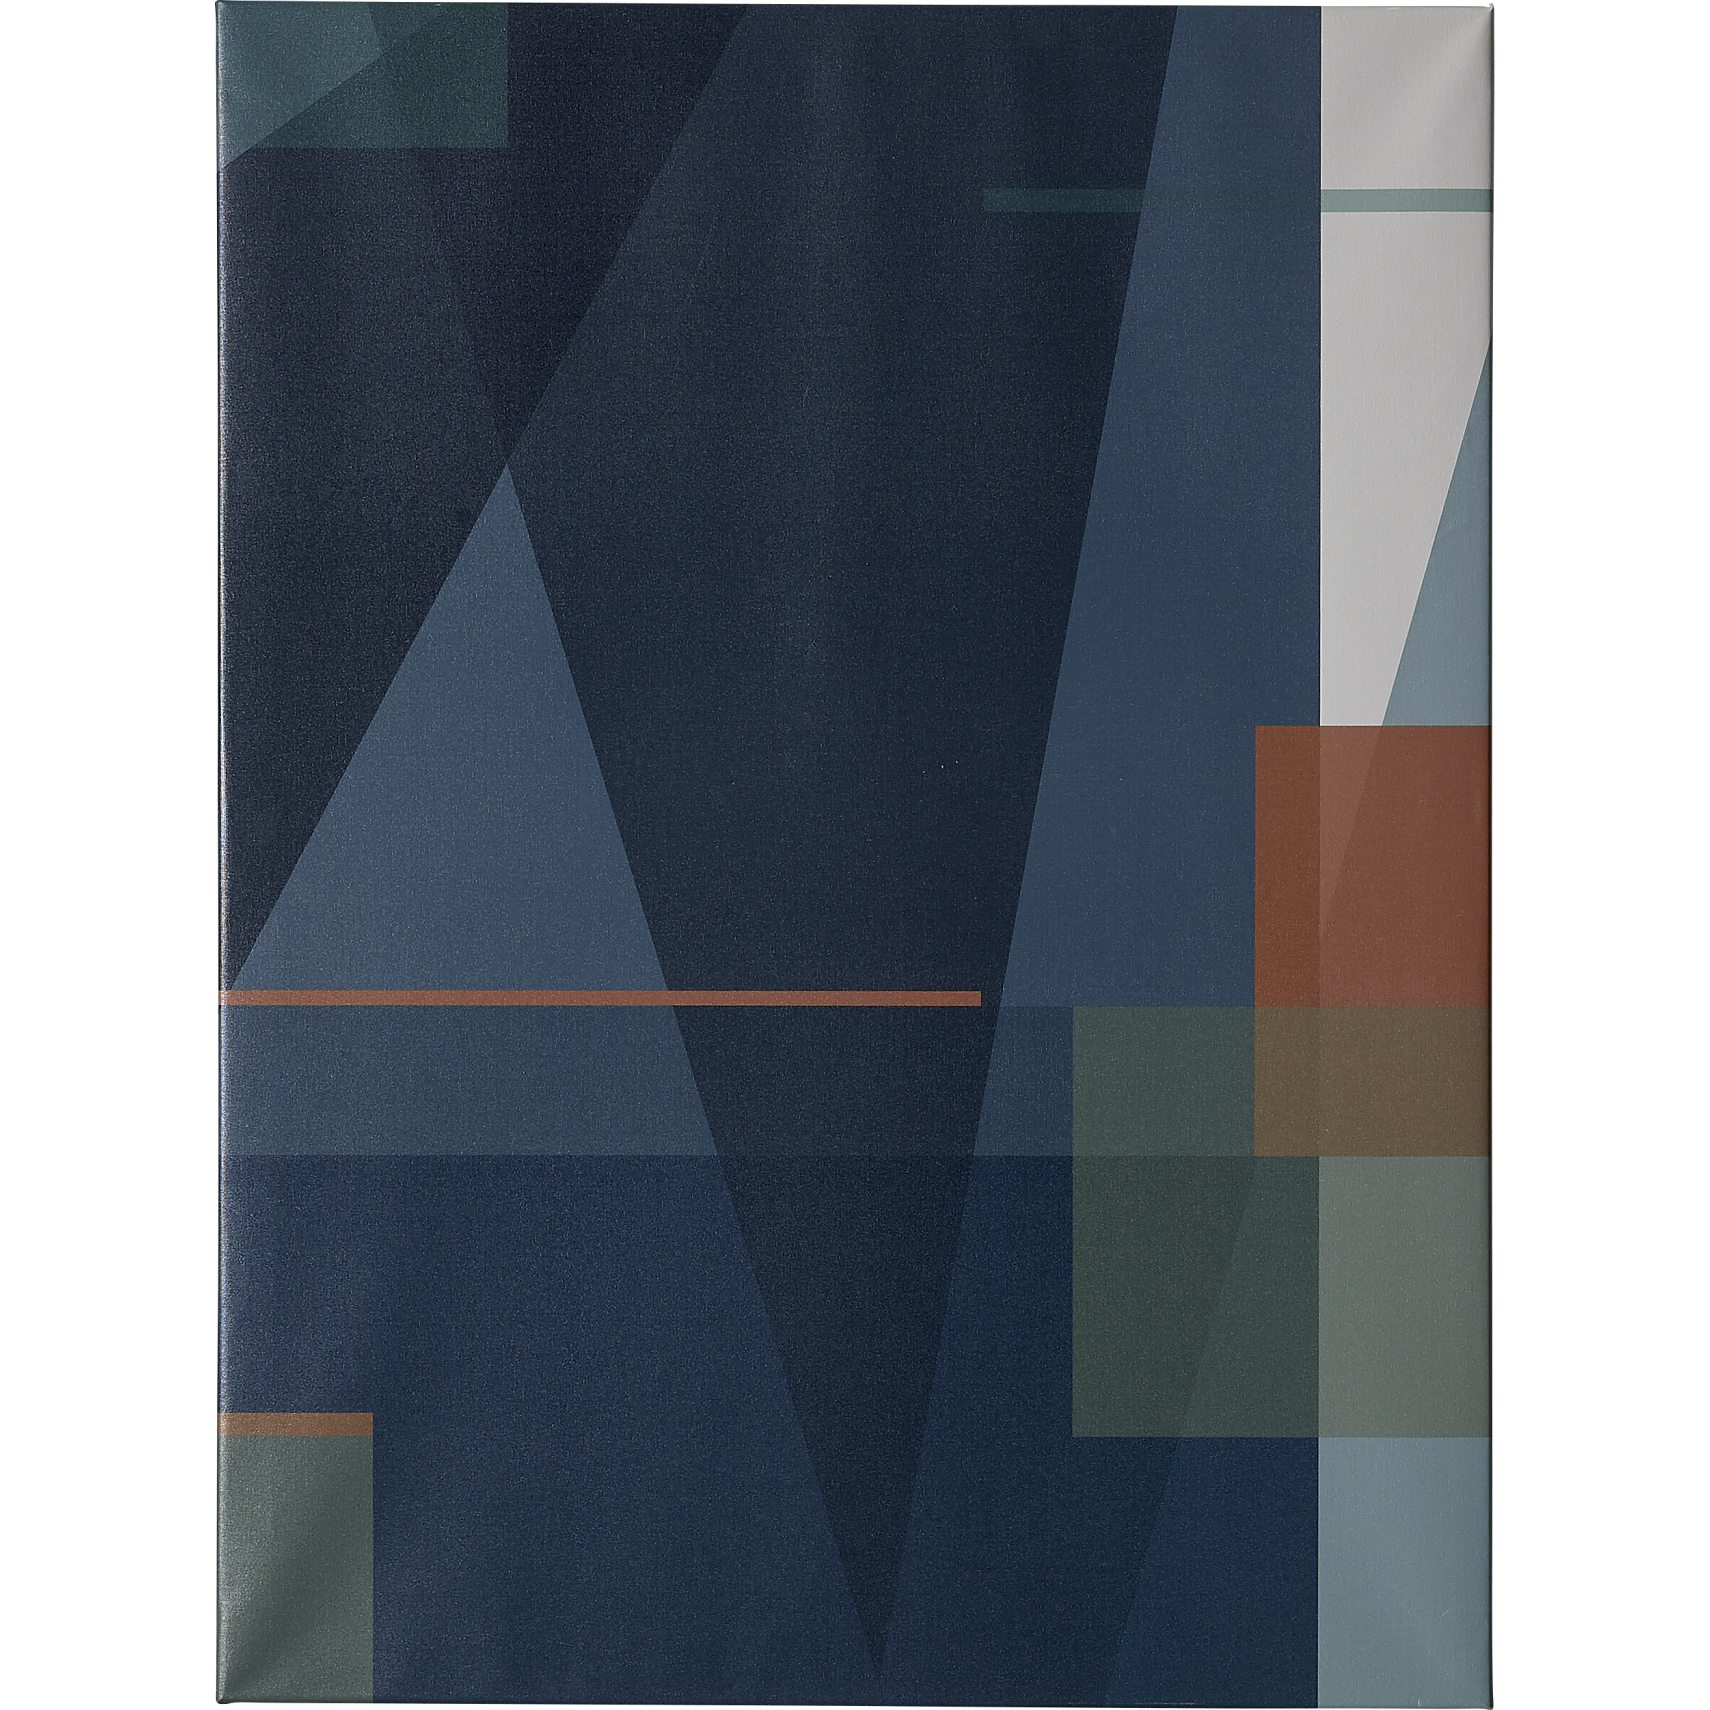 Blue Geometric canvasprint 90 x 12 x 3 cm - Blank